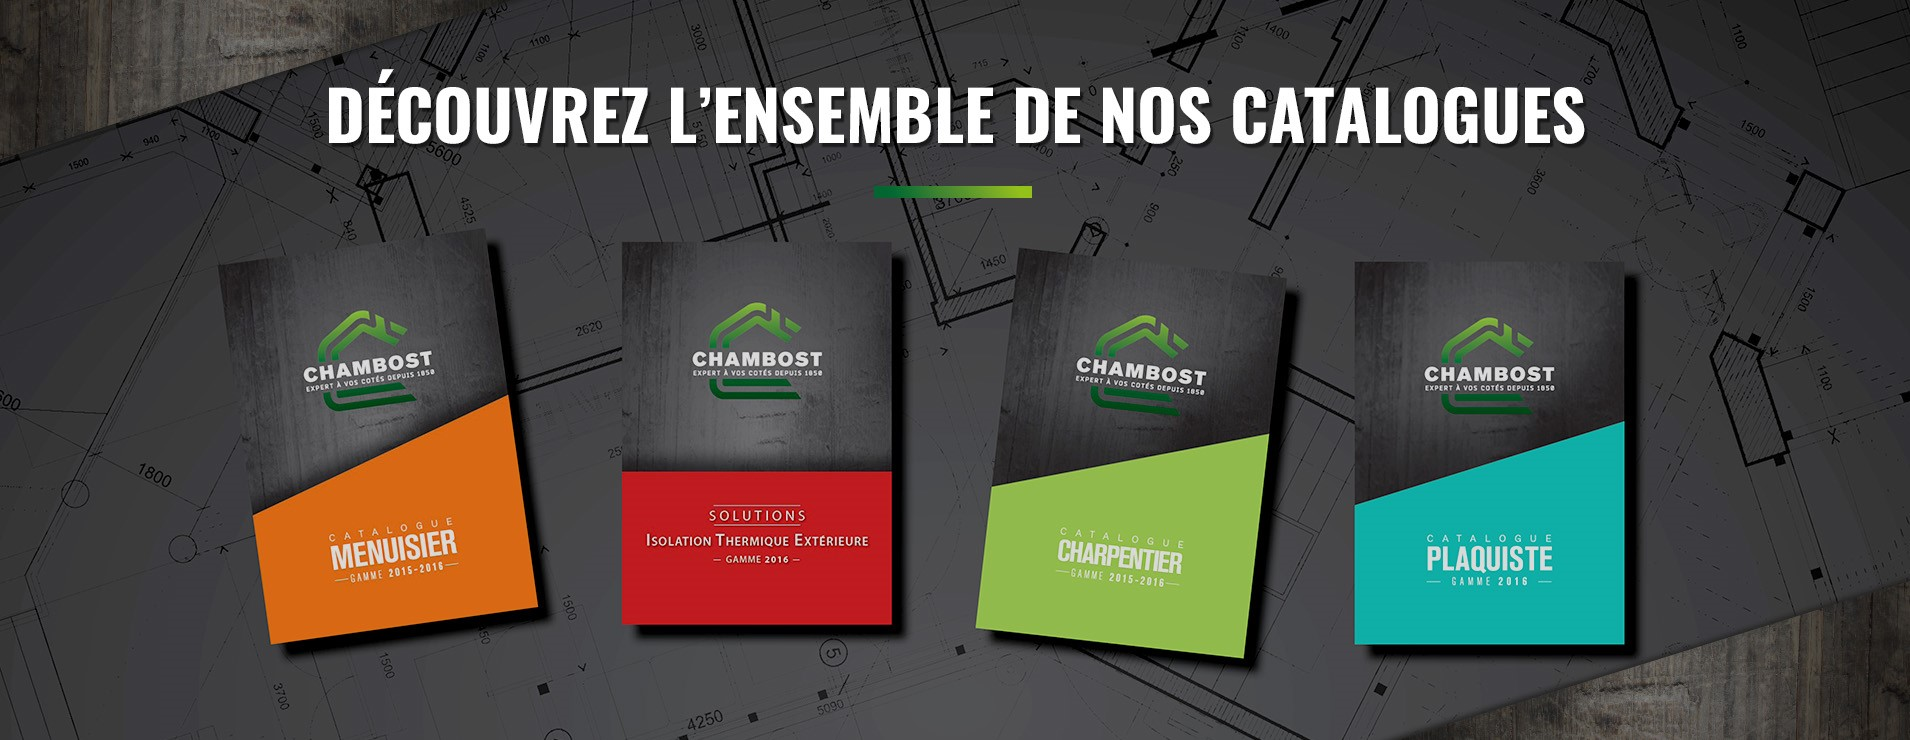 CHAMBOST MATERIAUX - Nos catalogues